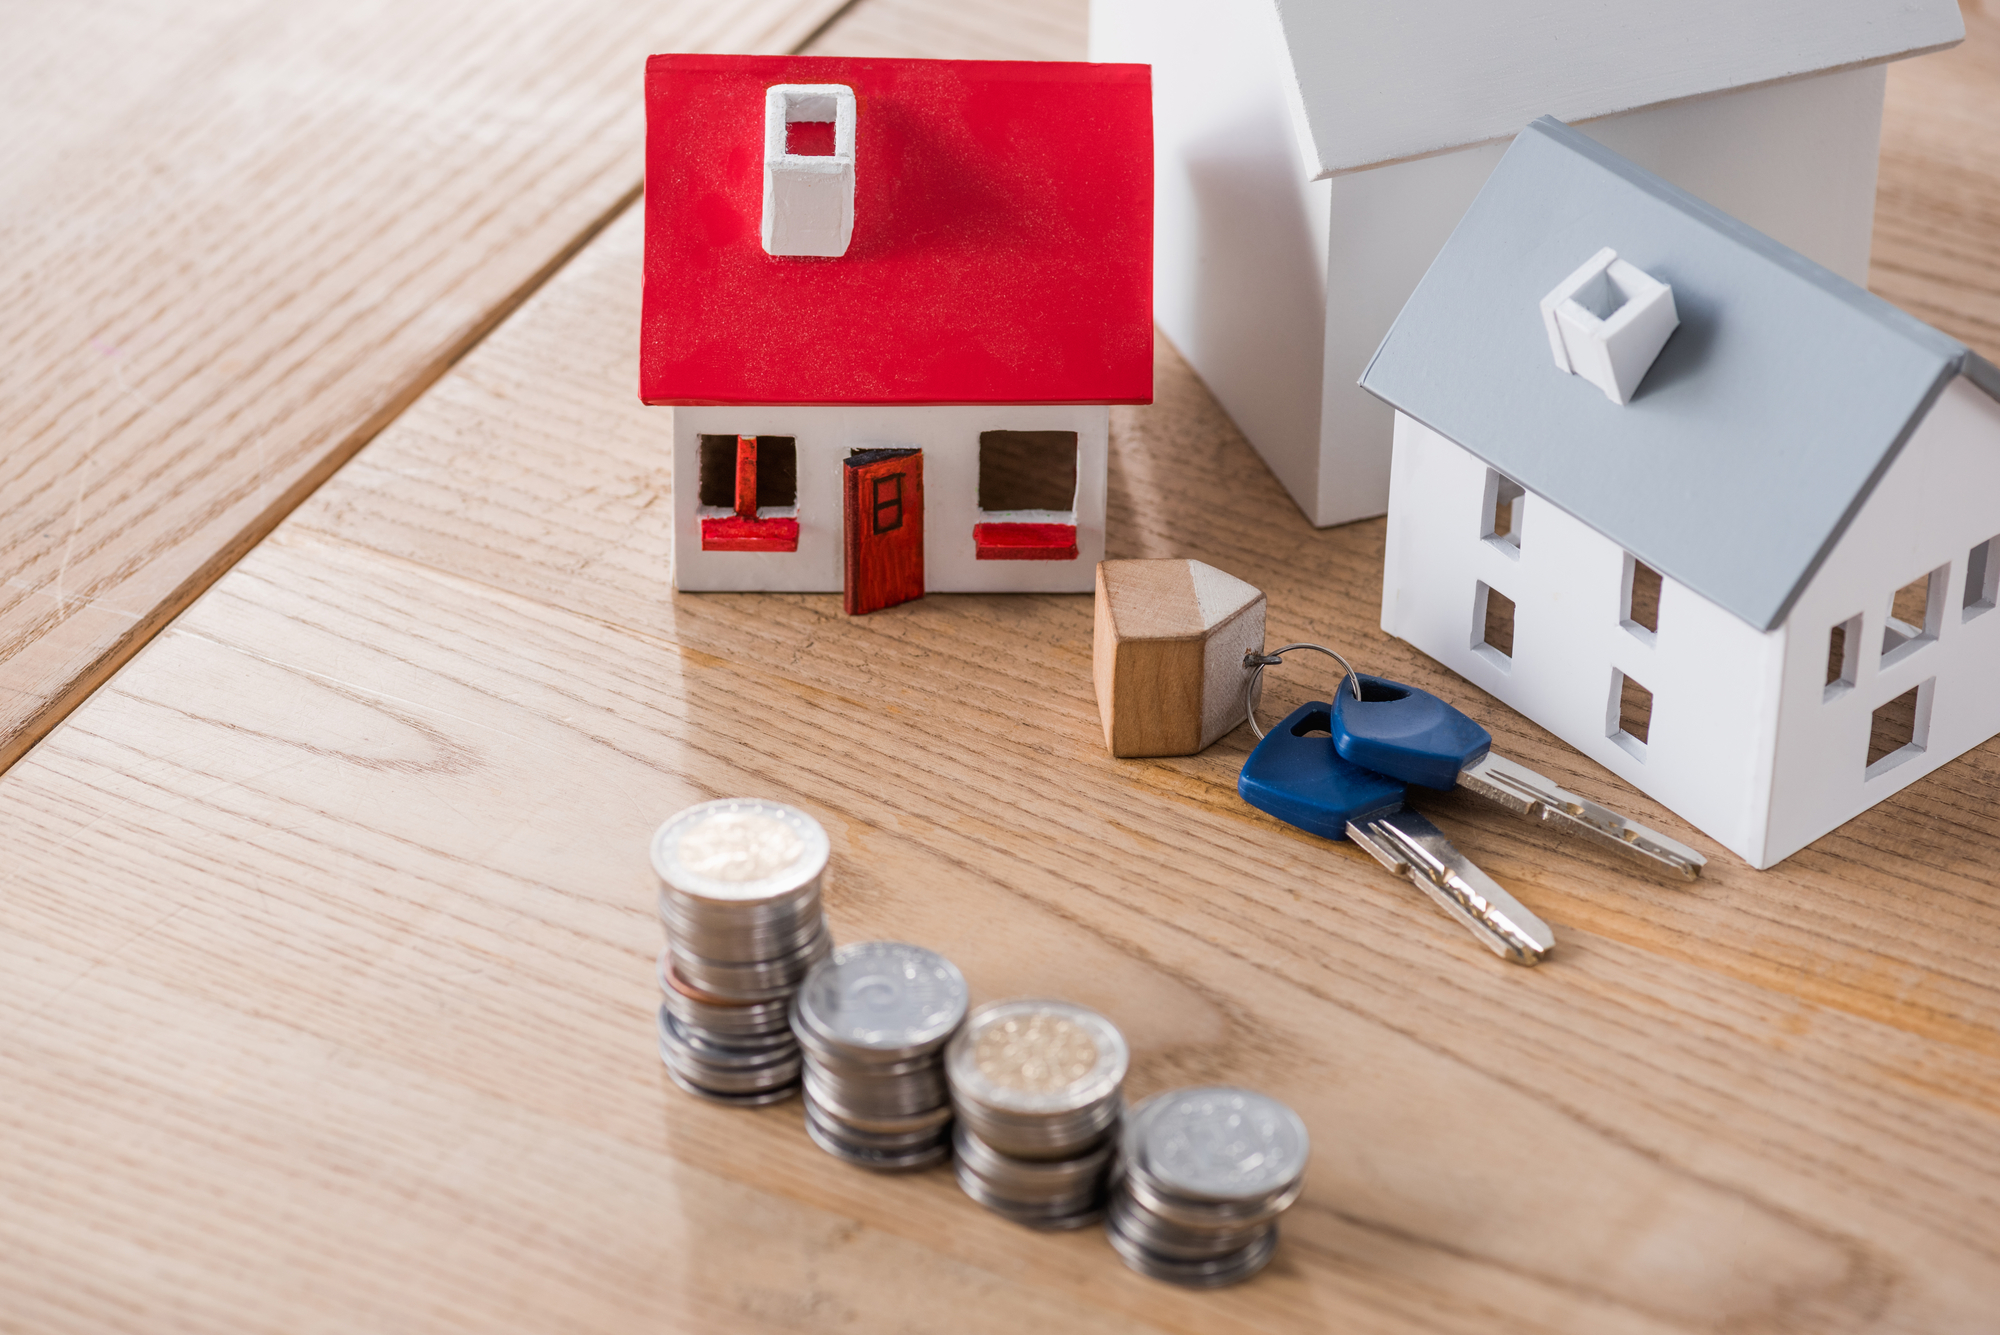 House models near keys and stacks of golden and silver coins on wooden table